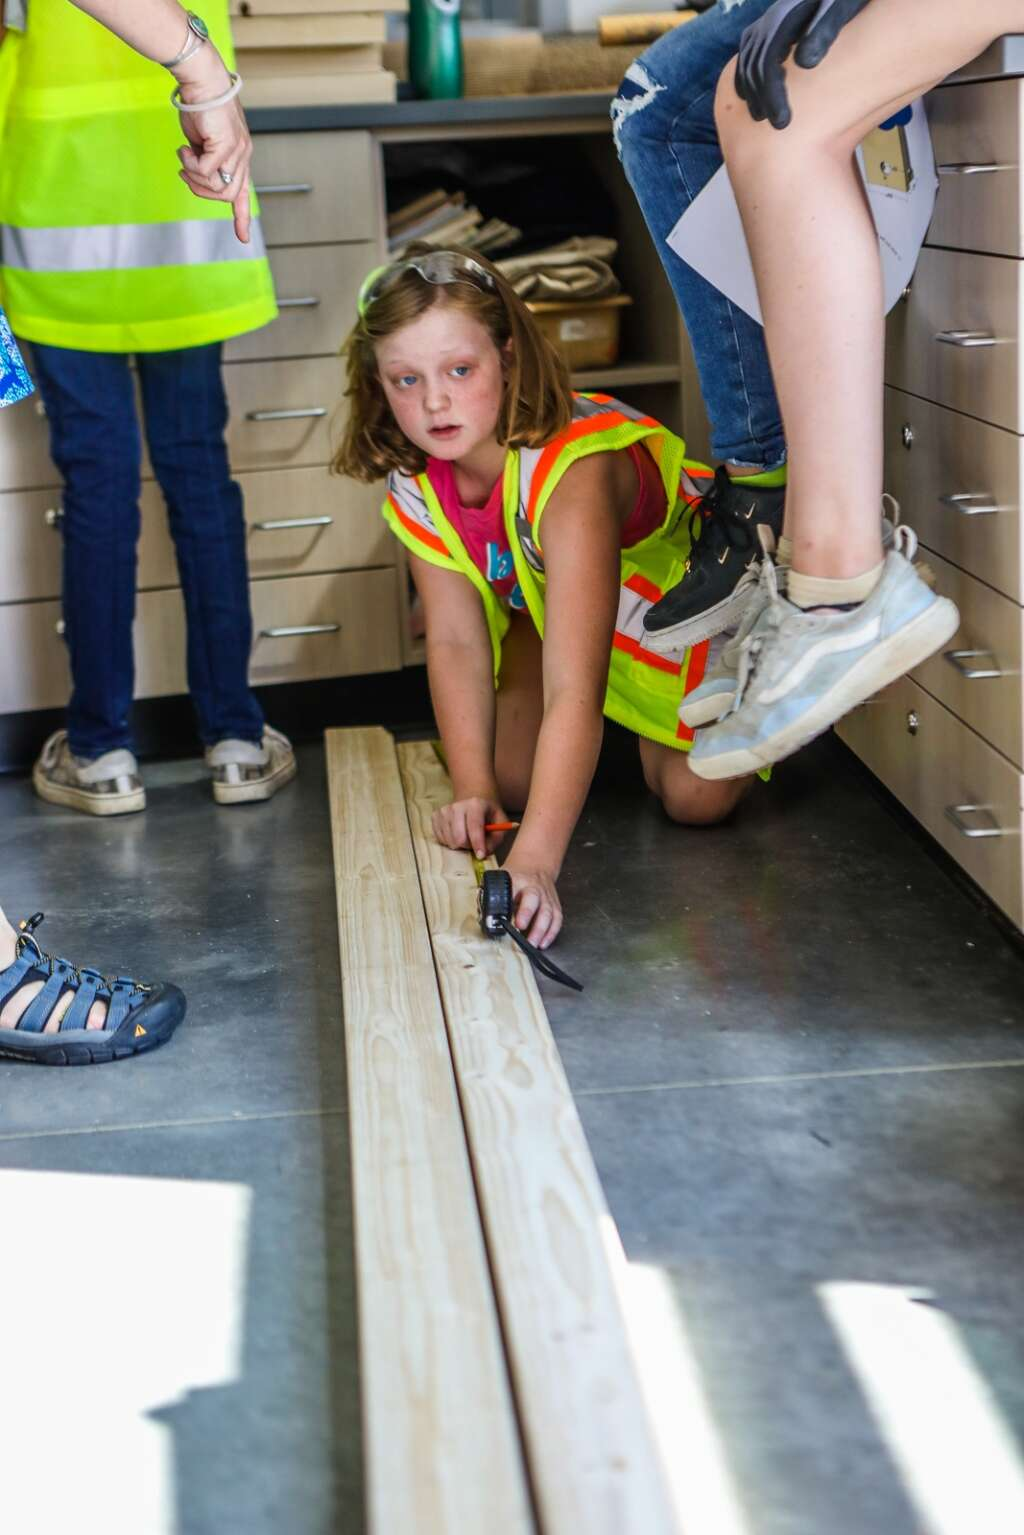 Amber Montgomery measures board lengths while constructing cornhole boards during YouthPower365 build day Friday at Eagle Valley Elementary School in Eagle.